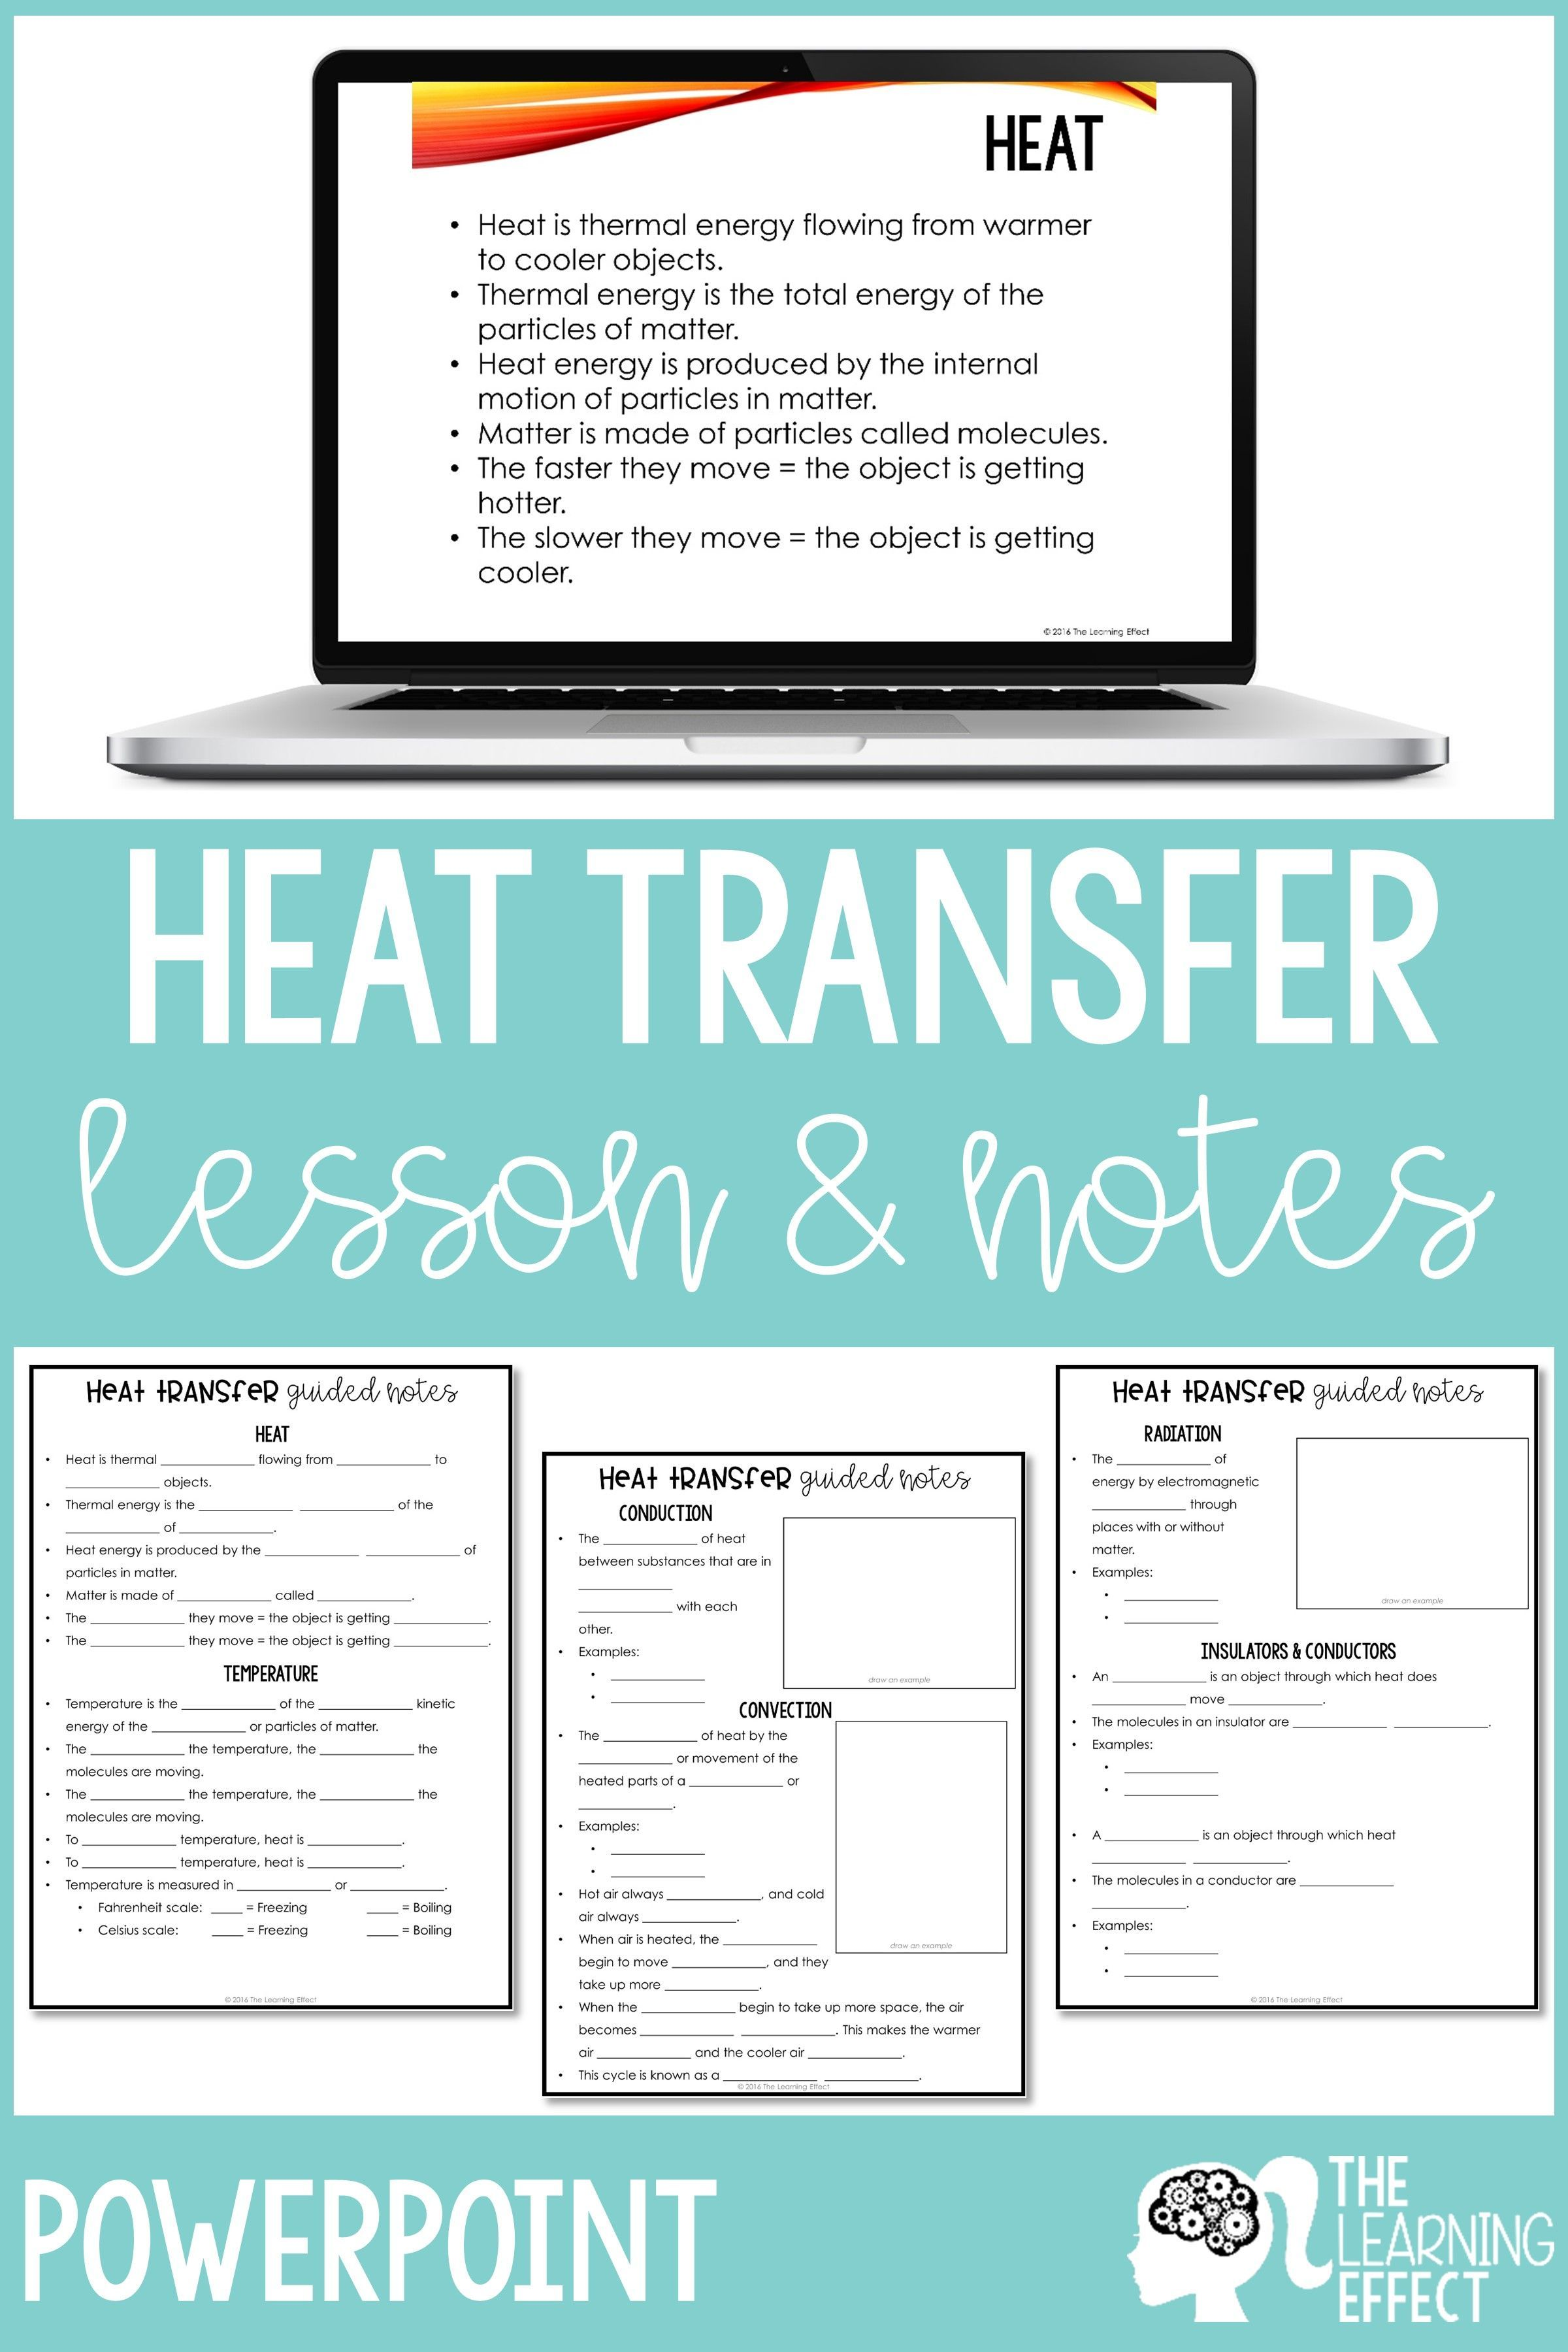 Heat Transfer Lesson And Notes Powerpoint And Google Slides Heat Transfer Lesson Heat